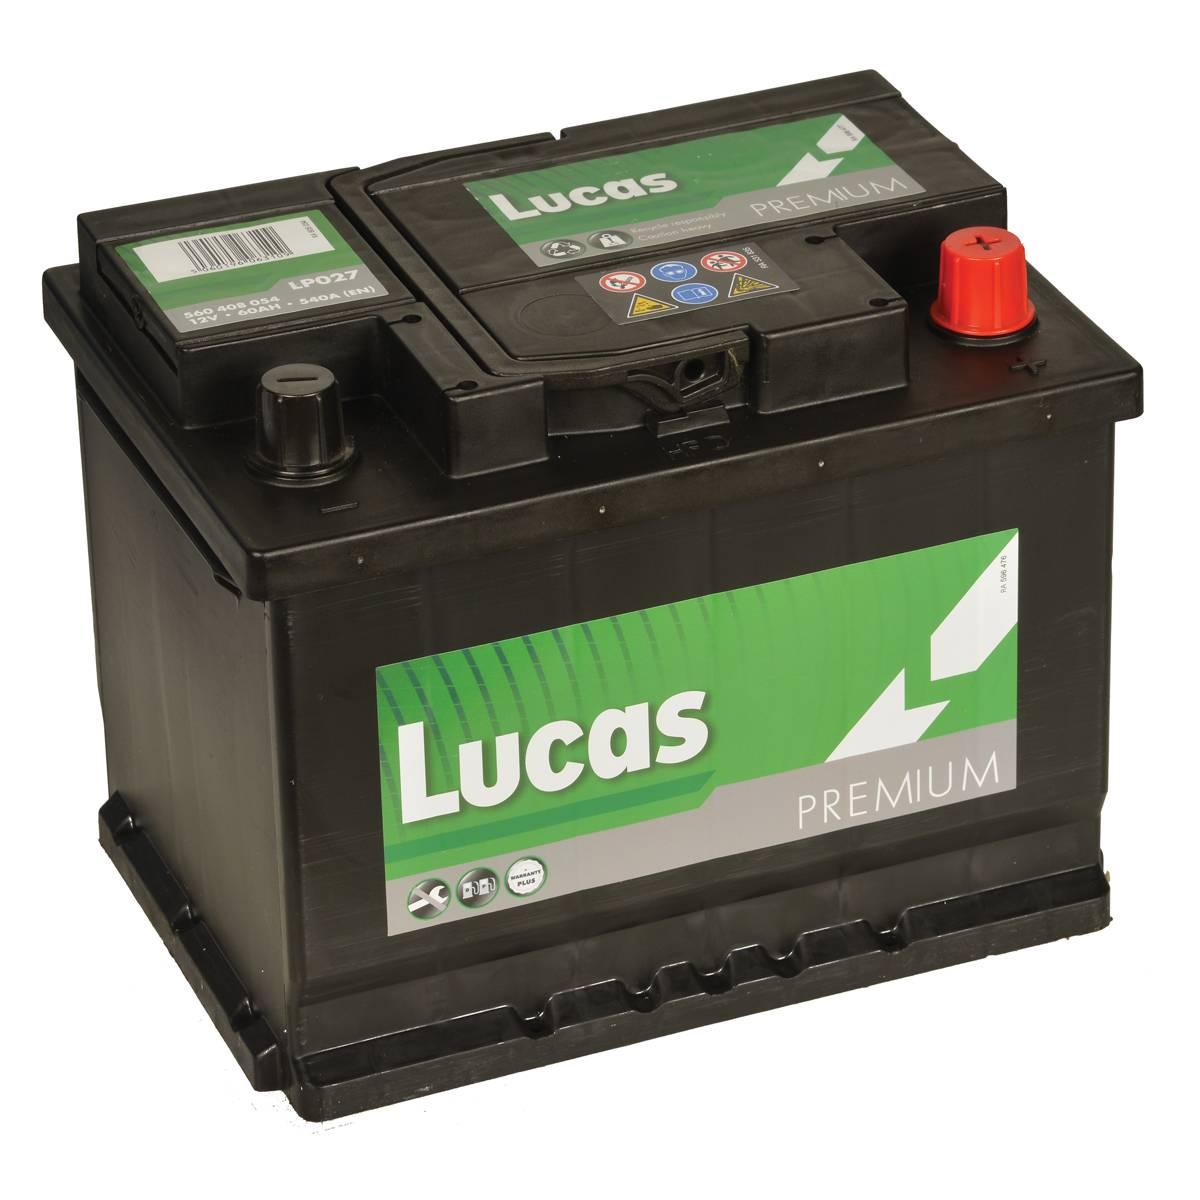 Lucas Premium LP027 Car Battery